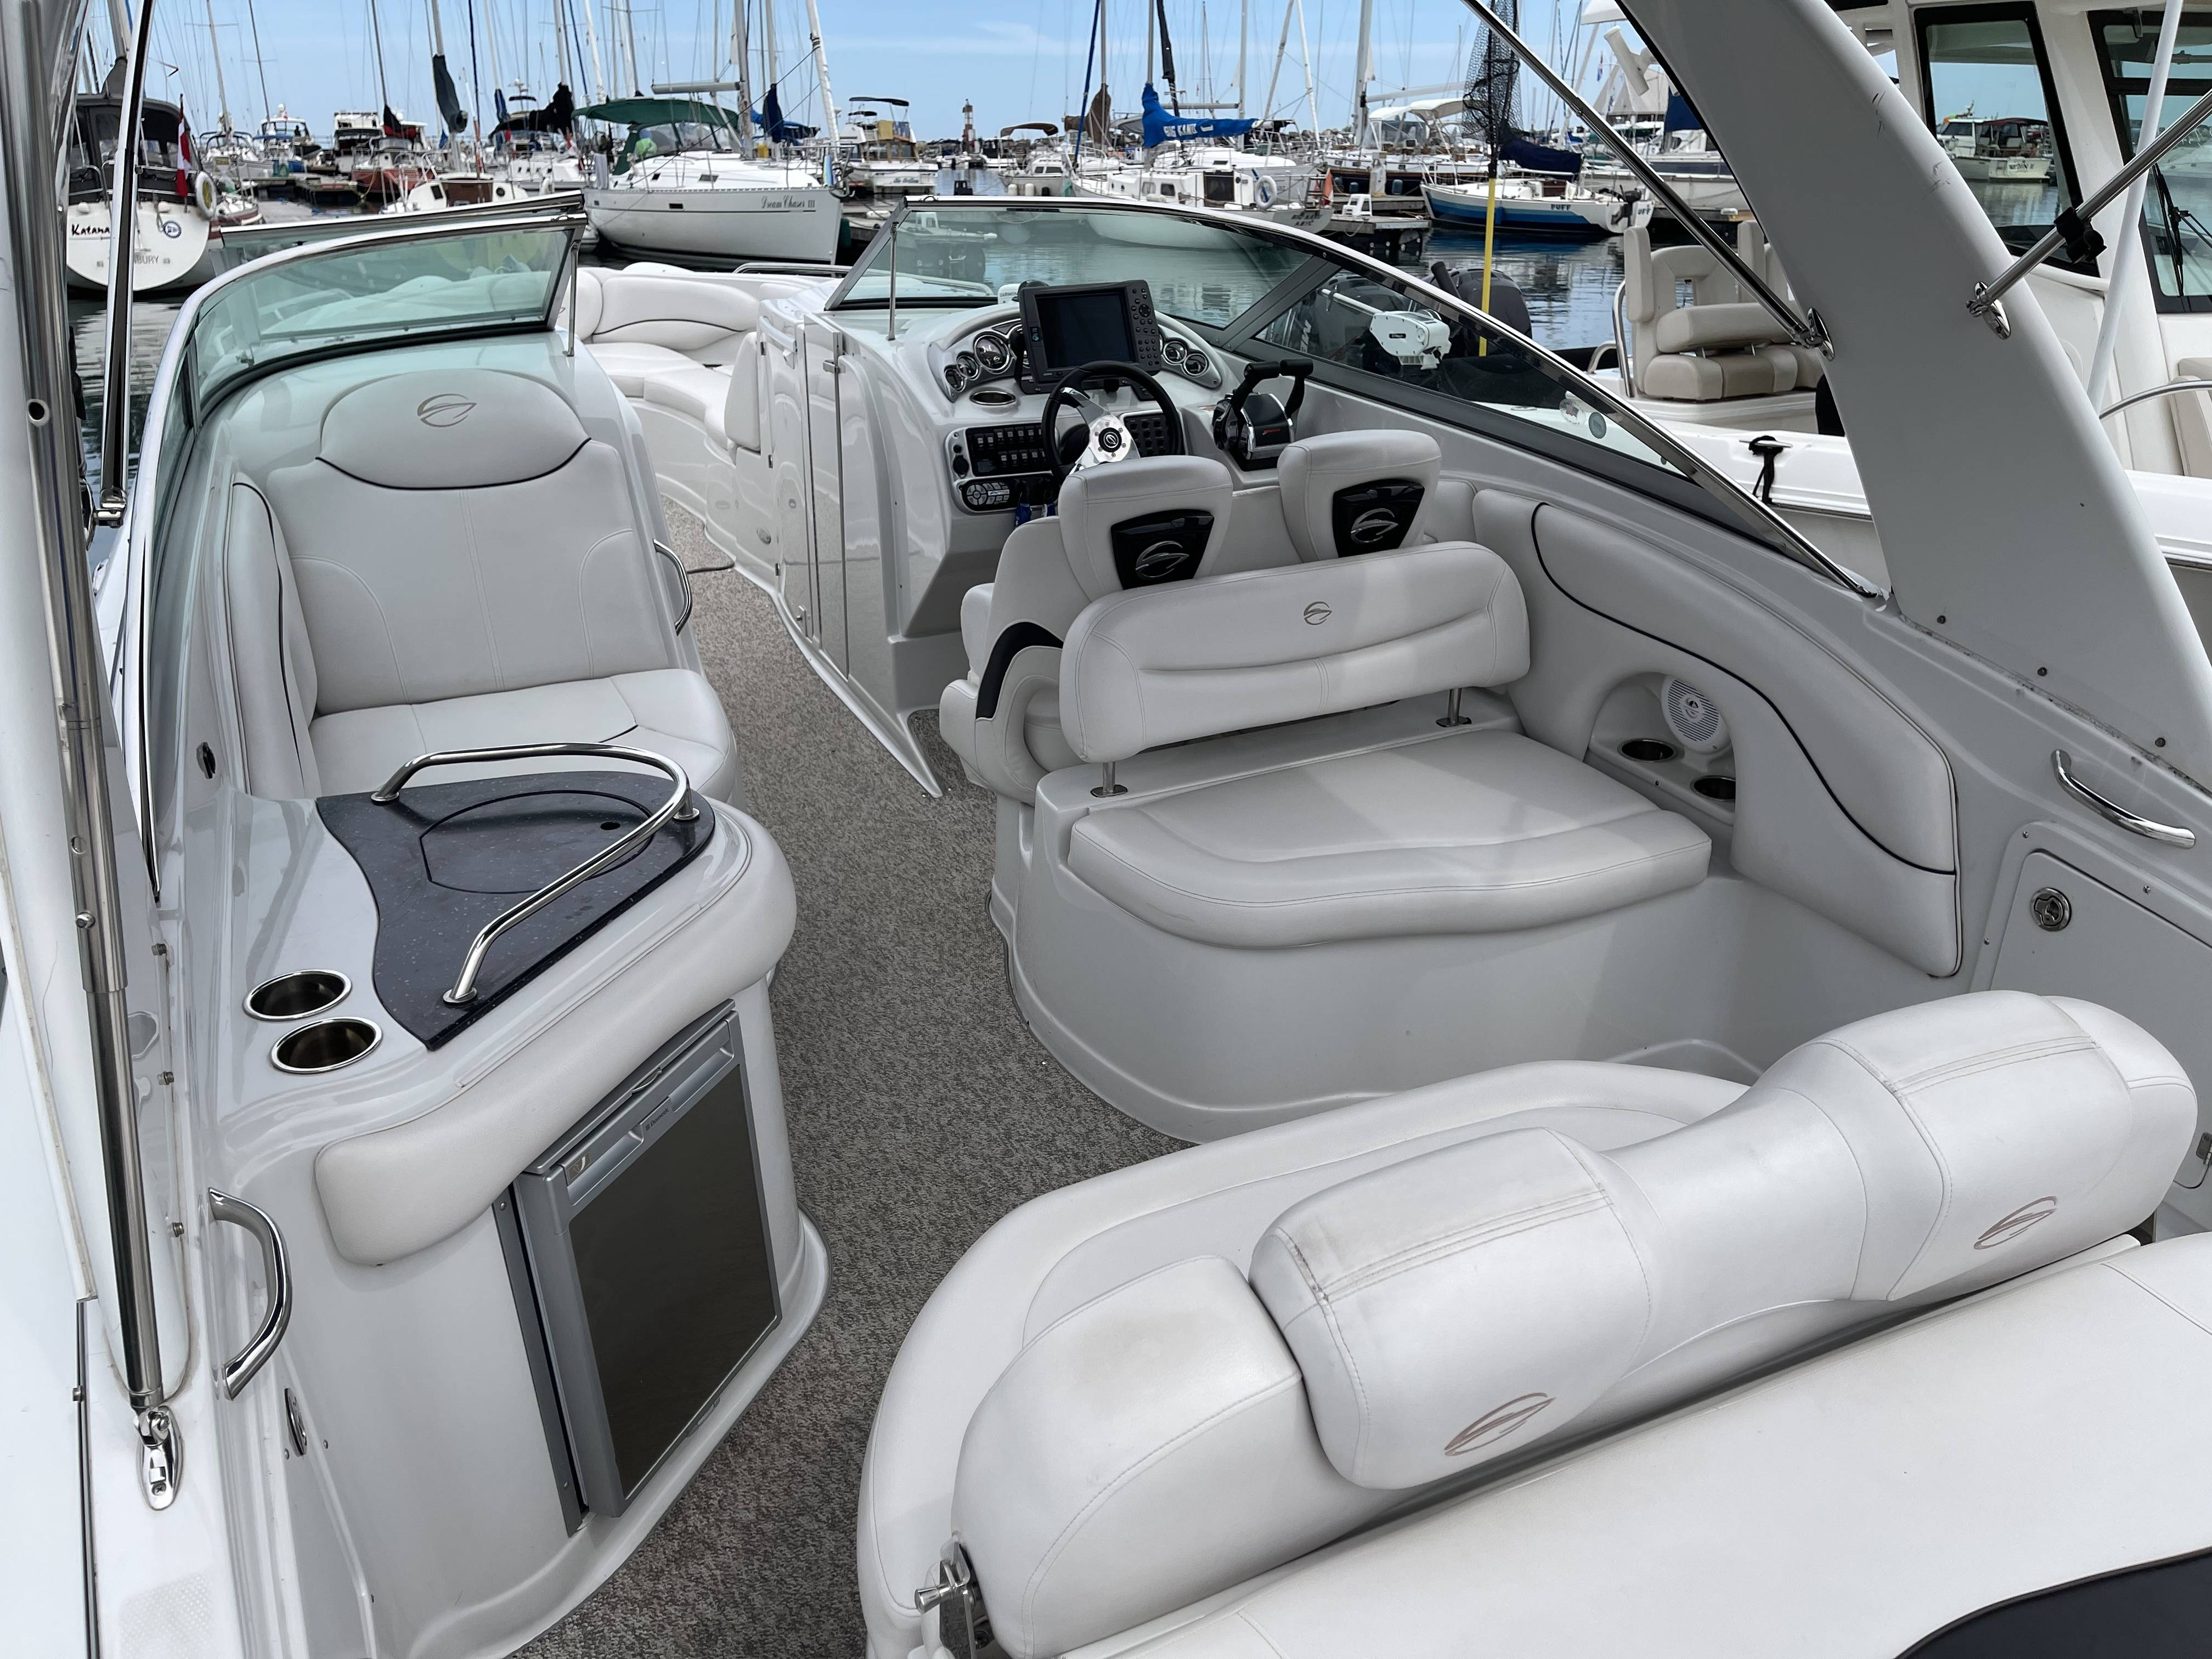 2011 Crownline boat for sale, model of the boat is 320 LS & Image # 22 of 55